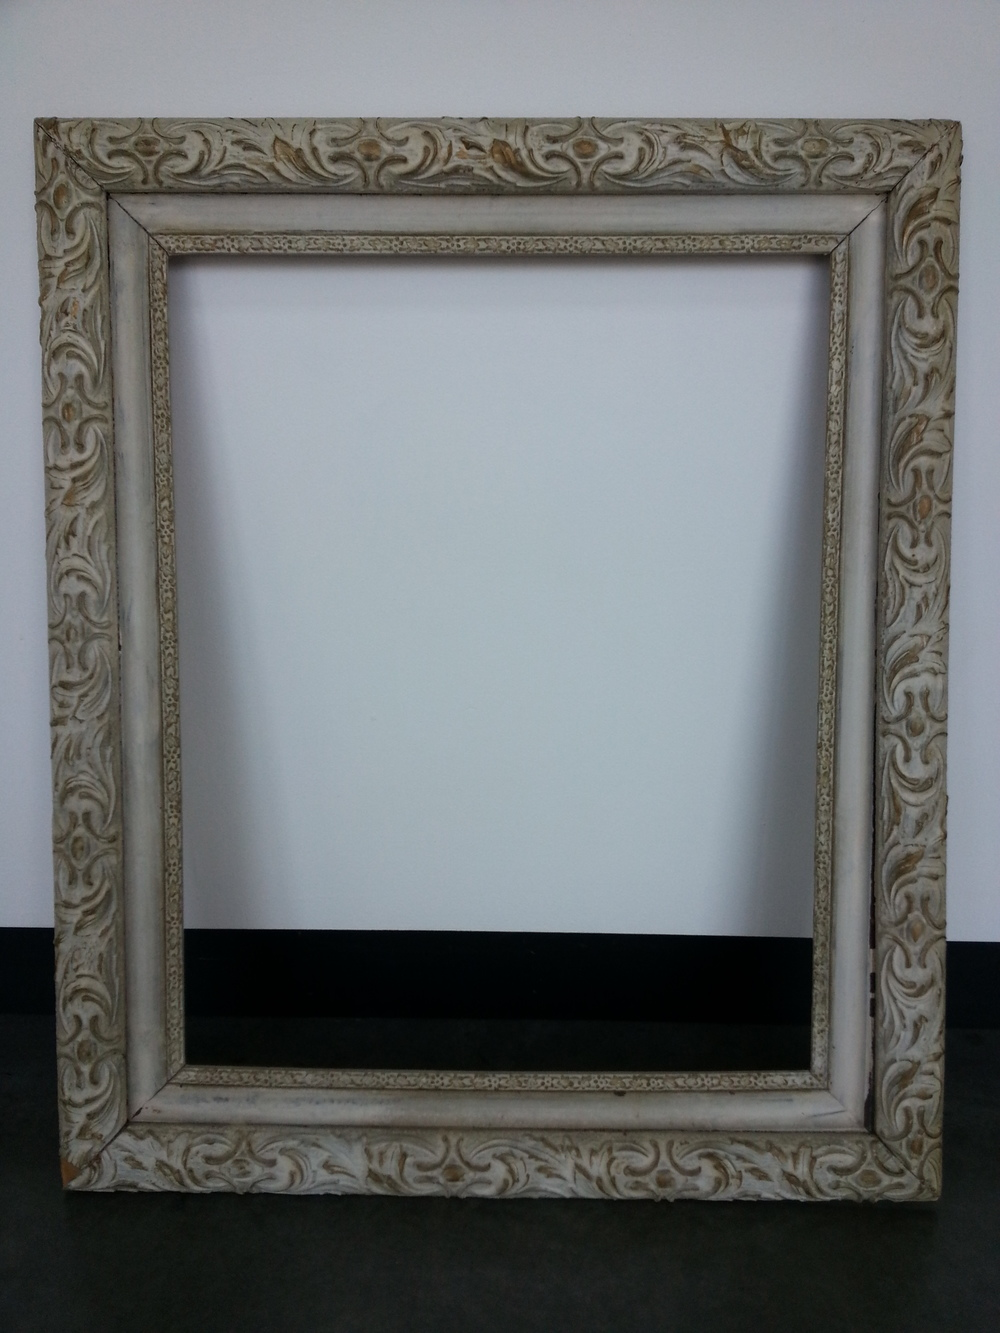 "Vintage Heavy Distressed / White Wash Finish      Frame R.S. 16"" x 20"" / Frame O.D. 21"" x 25""    $125     Available"